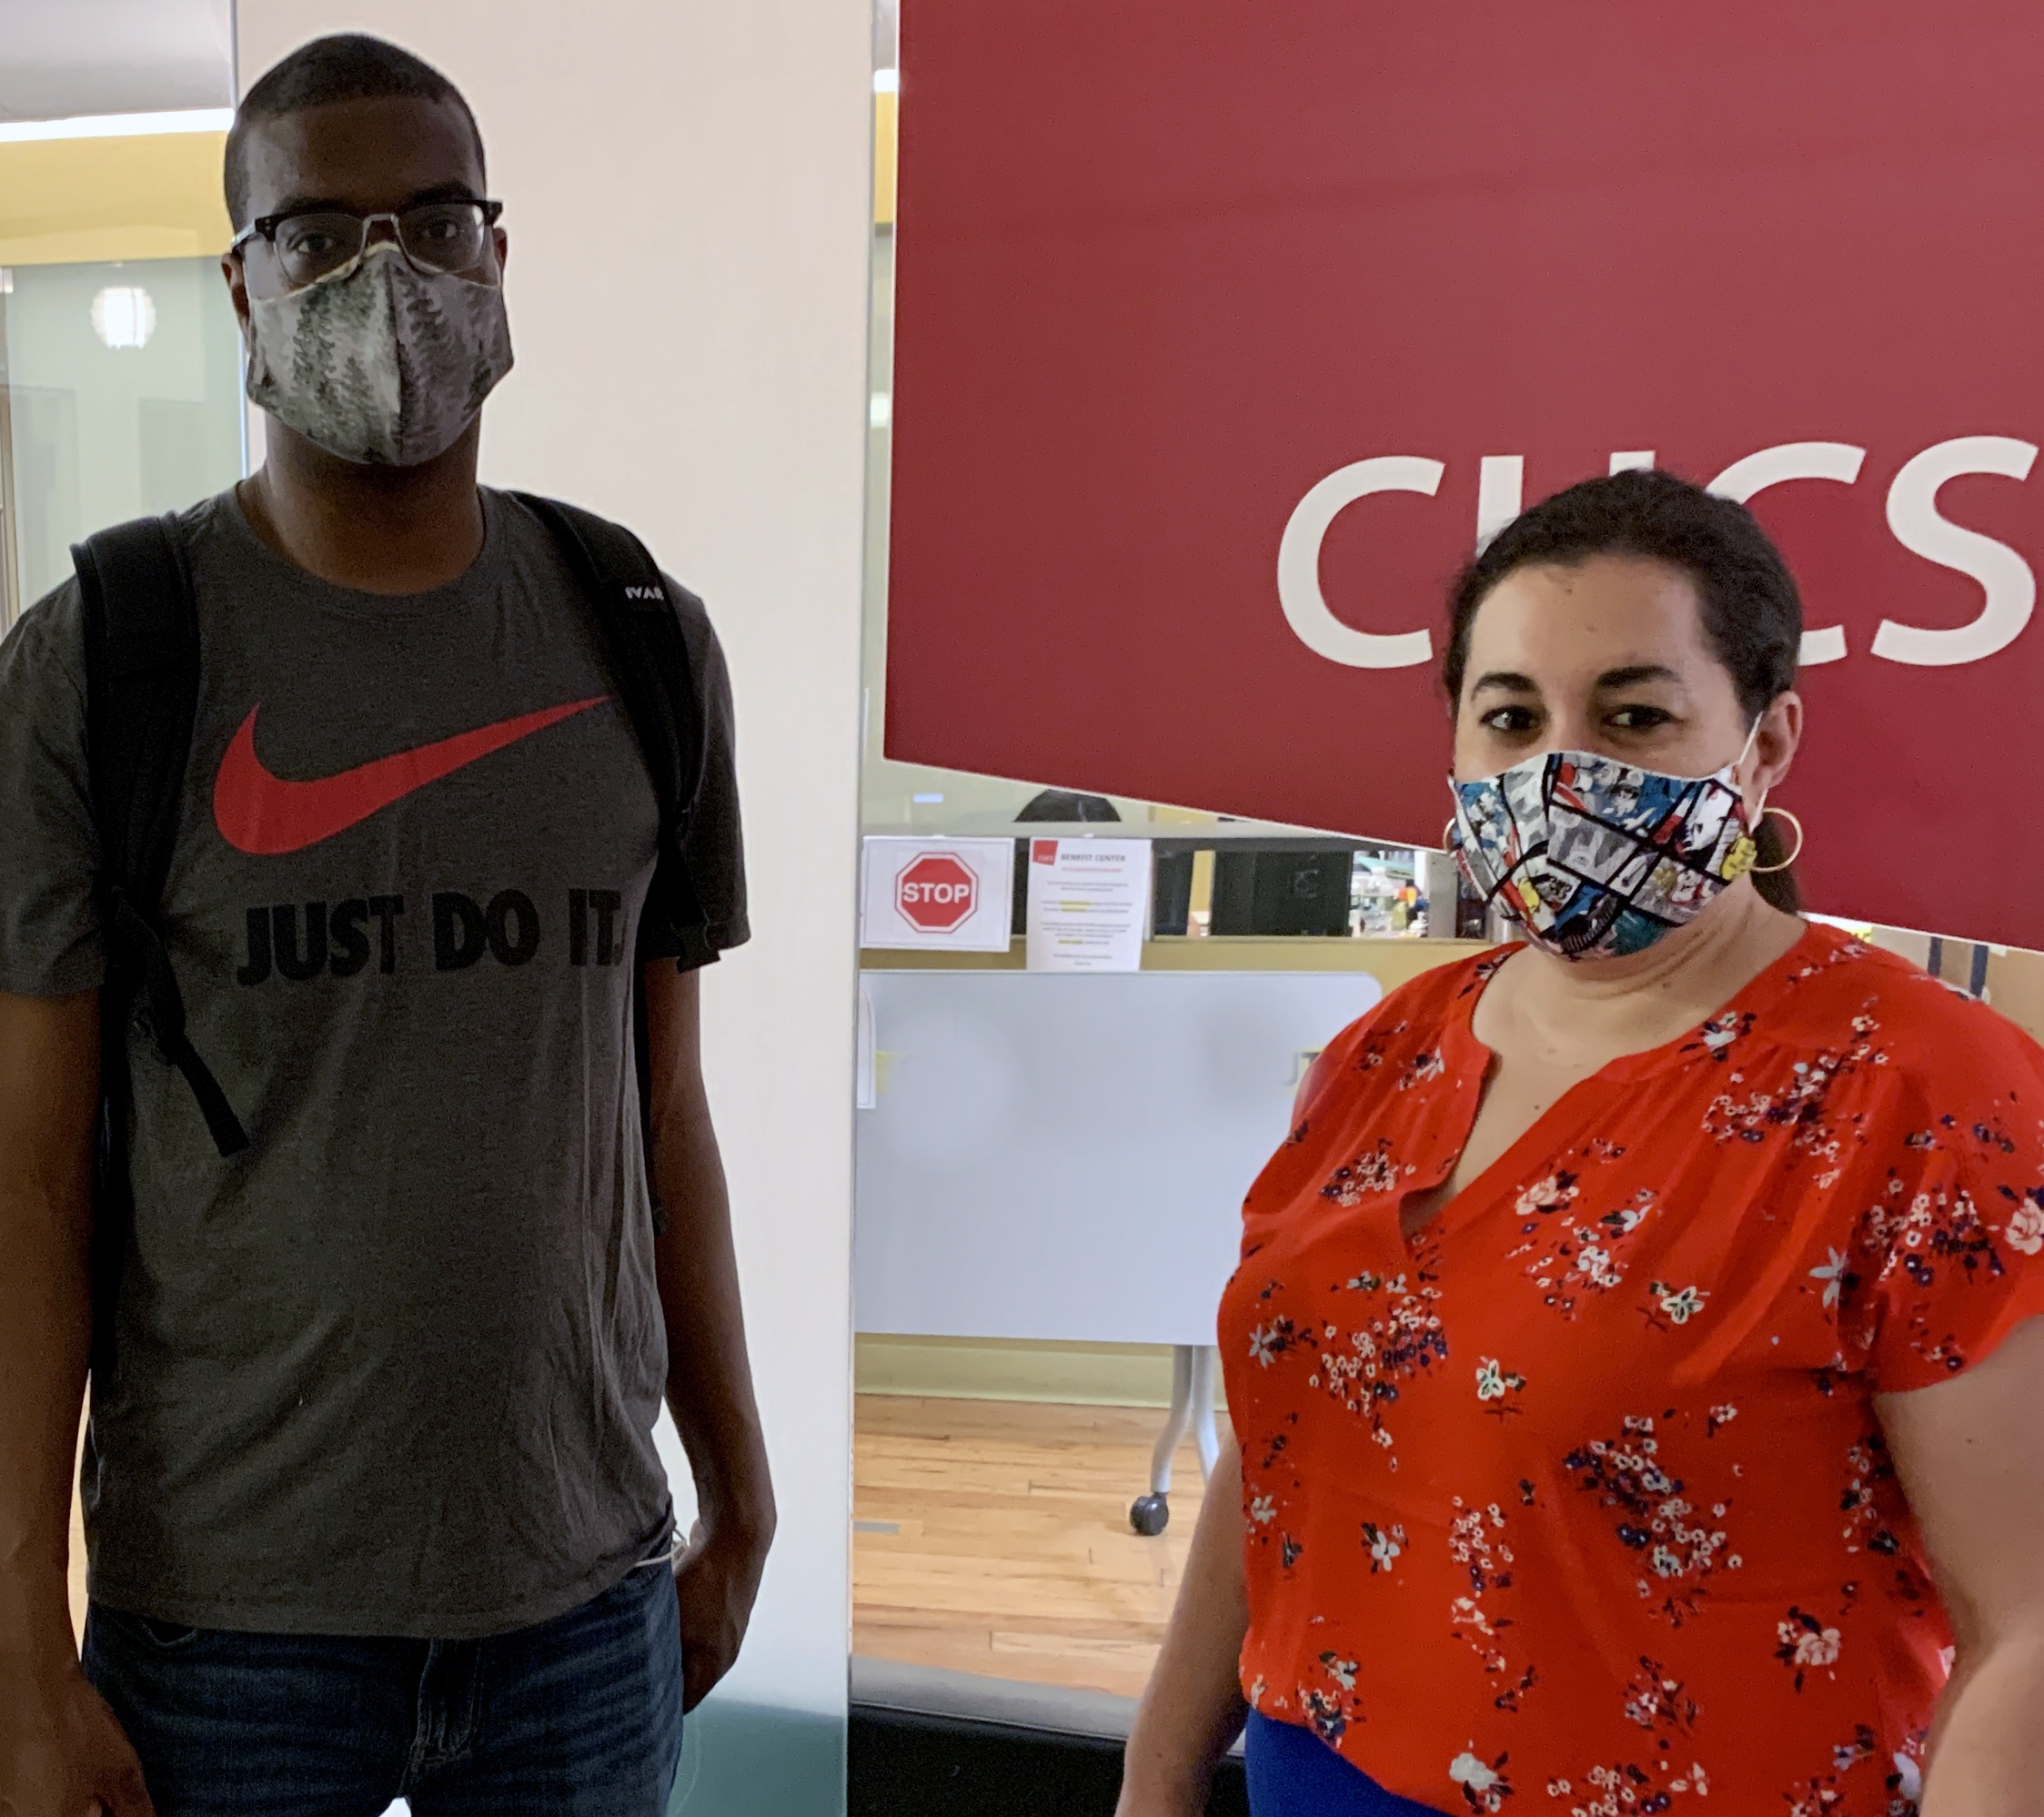 How to Donate Face Masks to CUCS